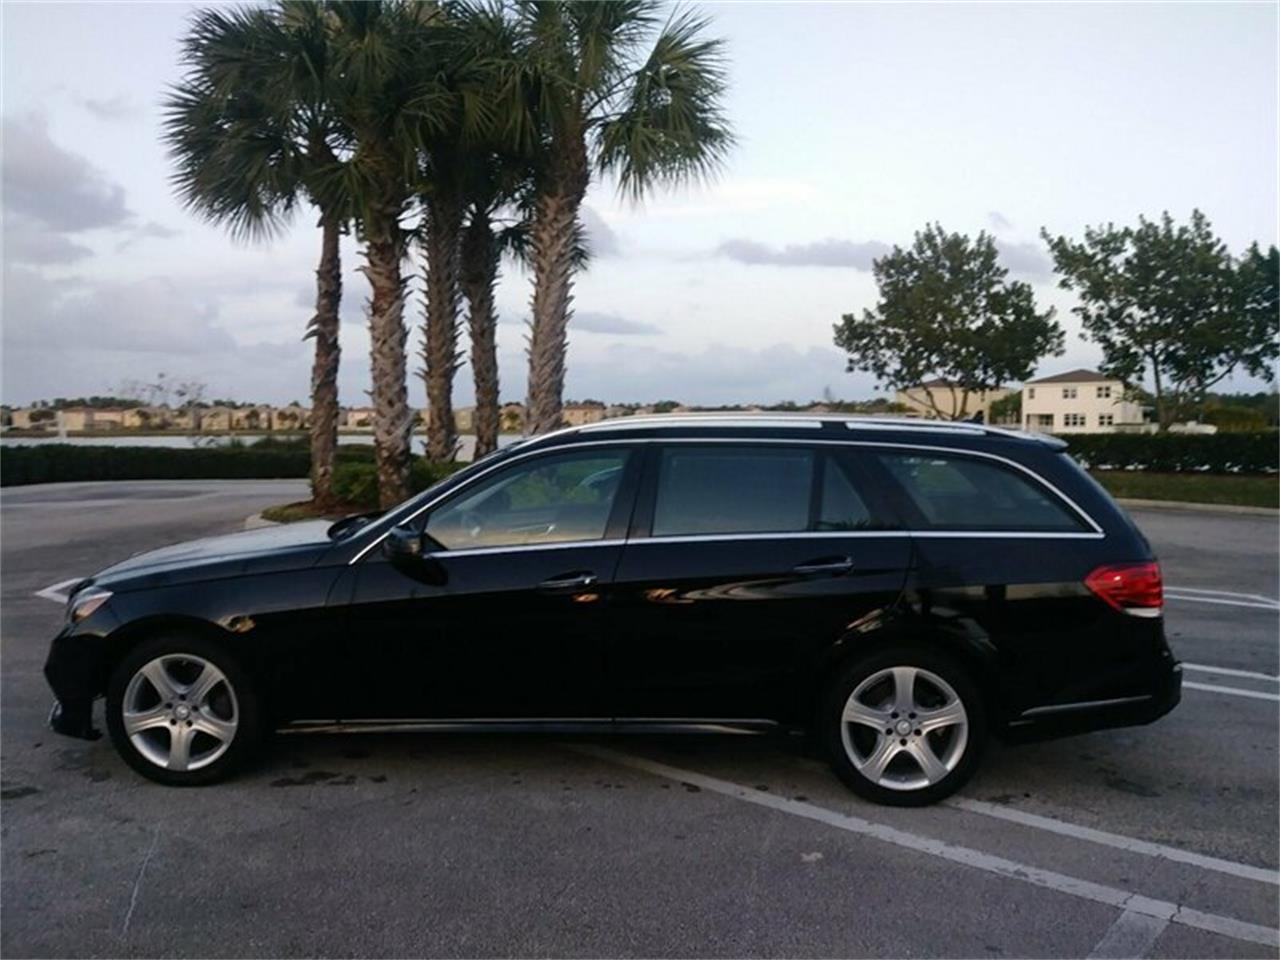 for sale 2014 mercedes-benz e-class in holly hill, florida cars - daytona beach, fl at geebo